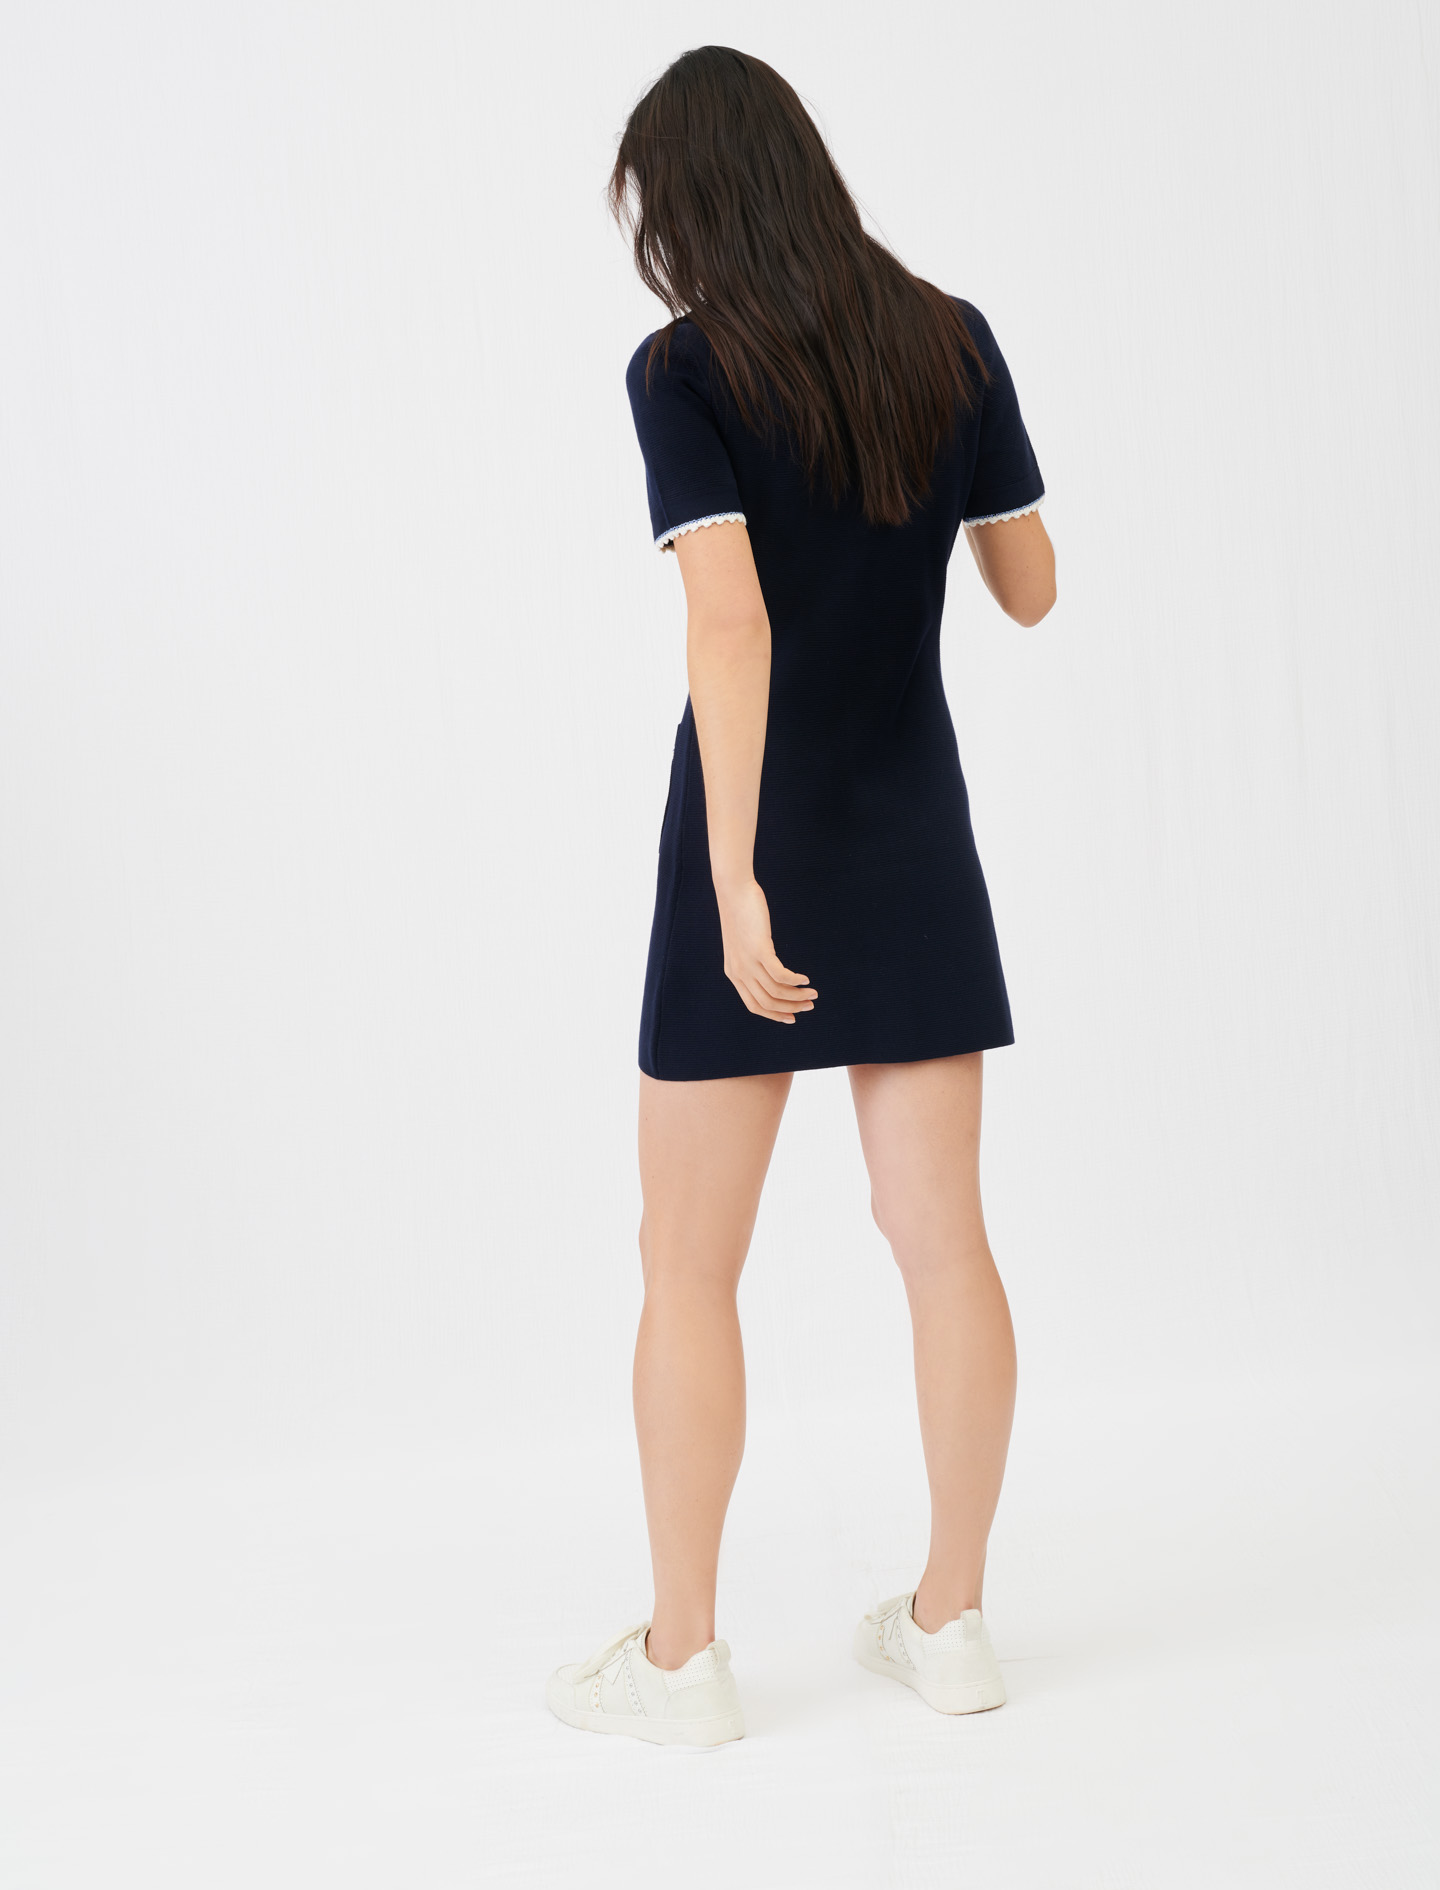 Contrast knit dress - navy